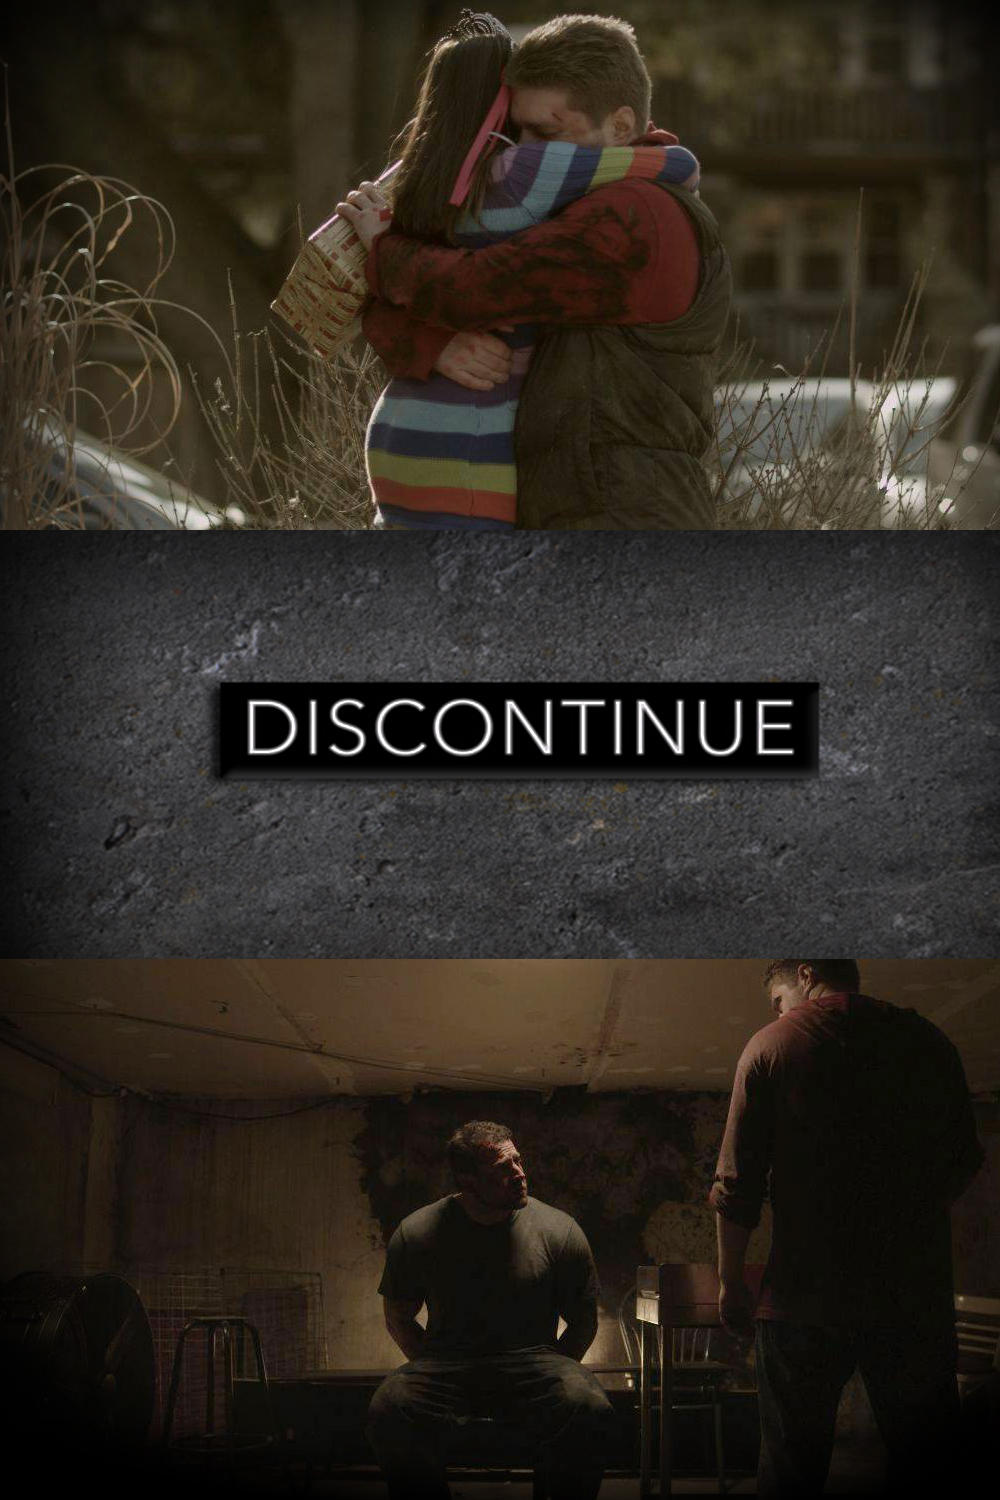 DISCONTINUE   In association with Gopher It Productions, Foster Films Canada is Co-Producing the original Television series DISCONTINUE.  Marcus Mills is a devoted family man and business owner. He also has a secret life as a ruthless contractor for the most powerful mob bosses in the city.    When his employers become involved in a gang war, Marcus must pick a side, while keeping his family safe - and in the dark.